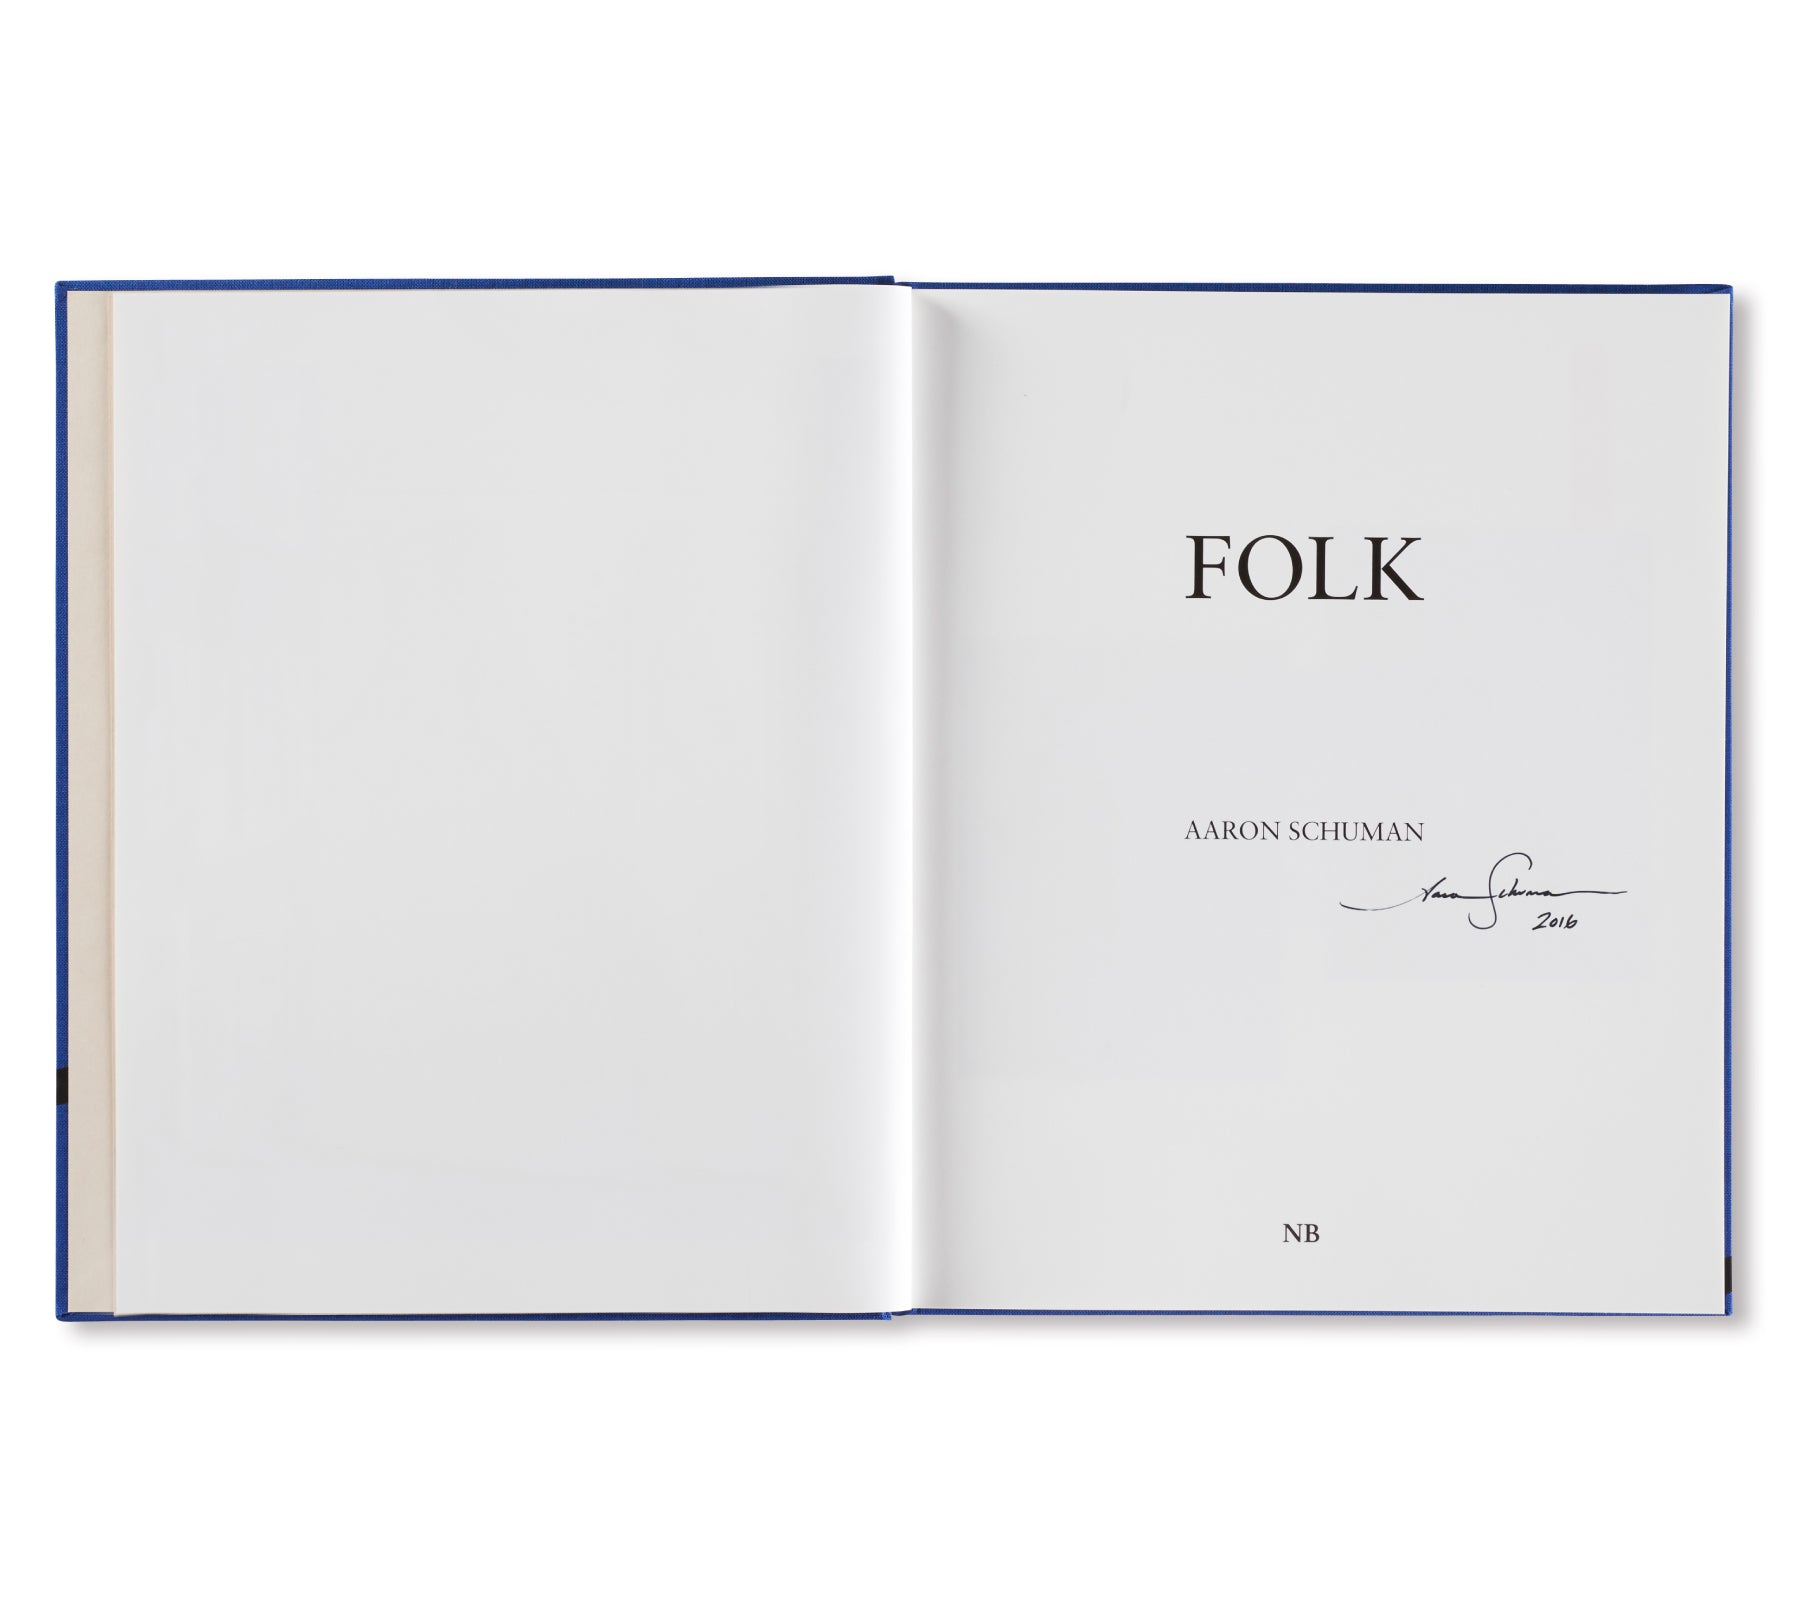 FOLK by Aaron Schuman [SIGNED]